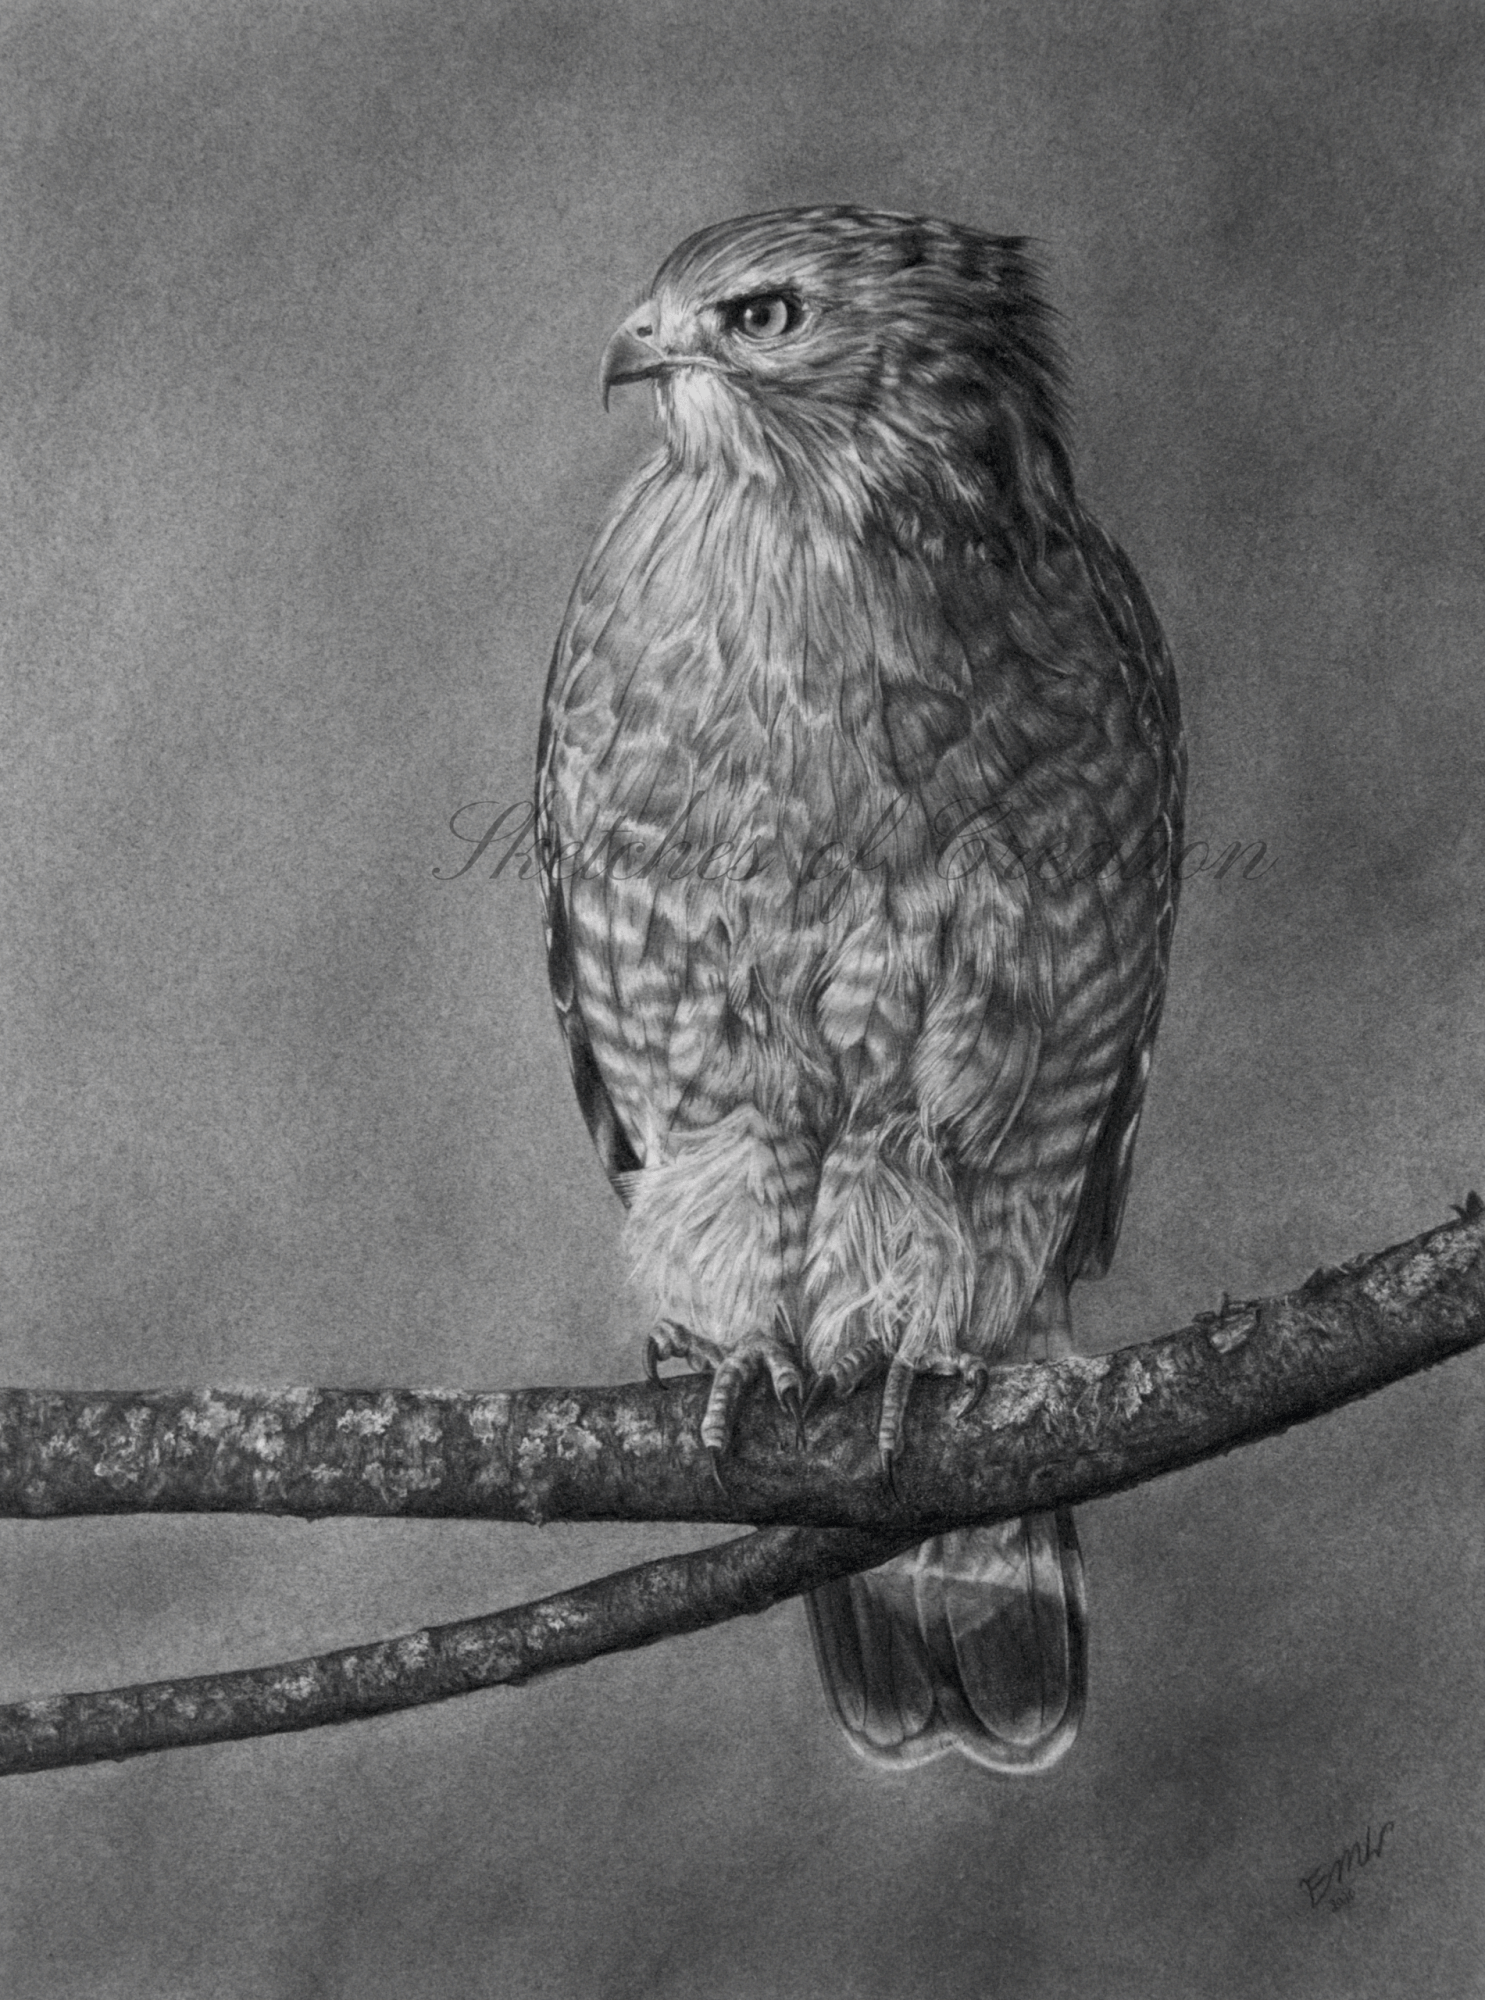 'Determination' a drawing of a Red-shouldered Hawk on a branch. 9x12 inches. Completed September 2020